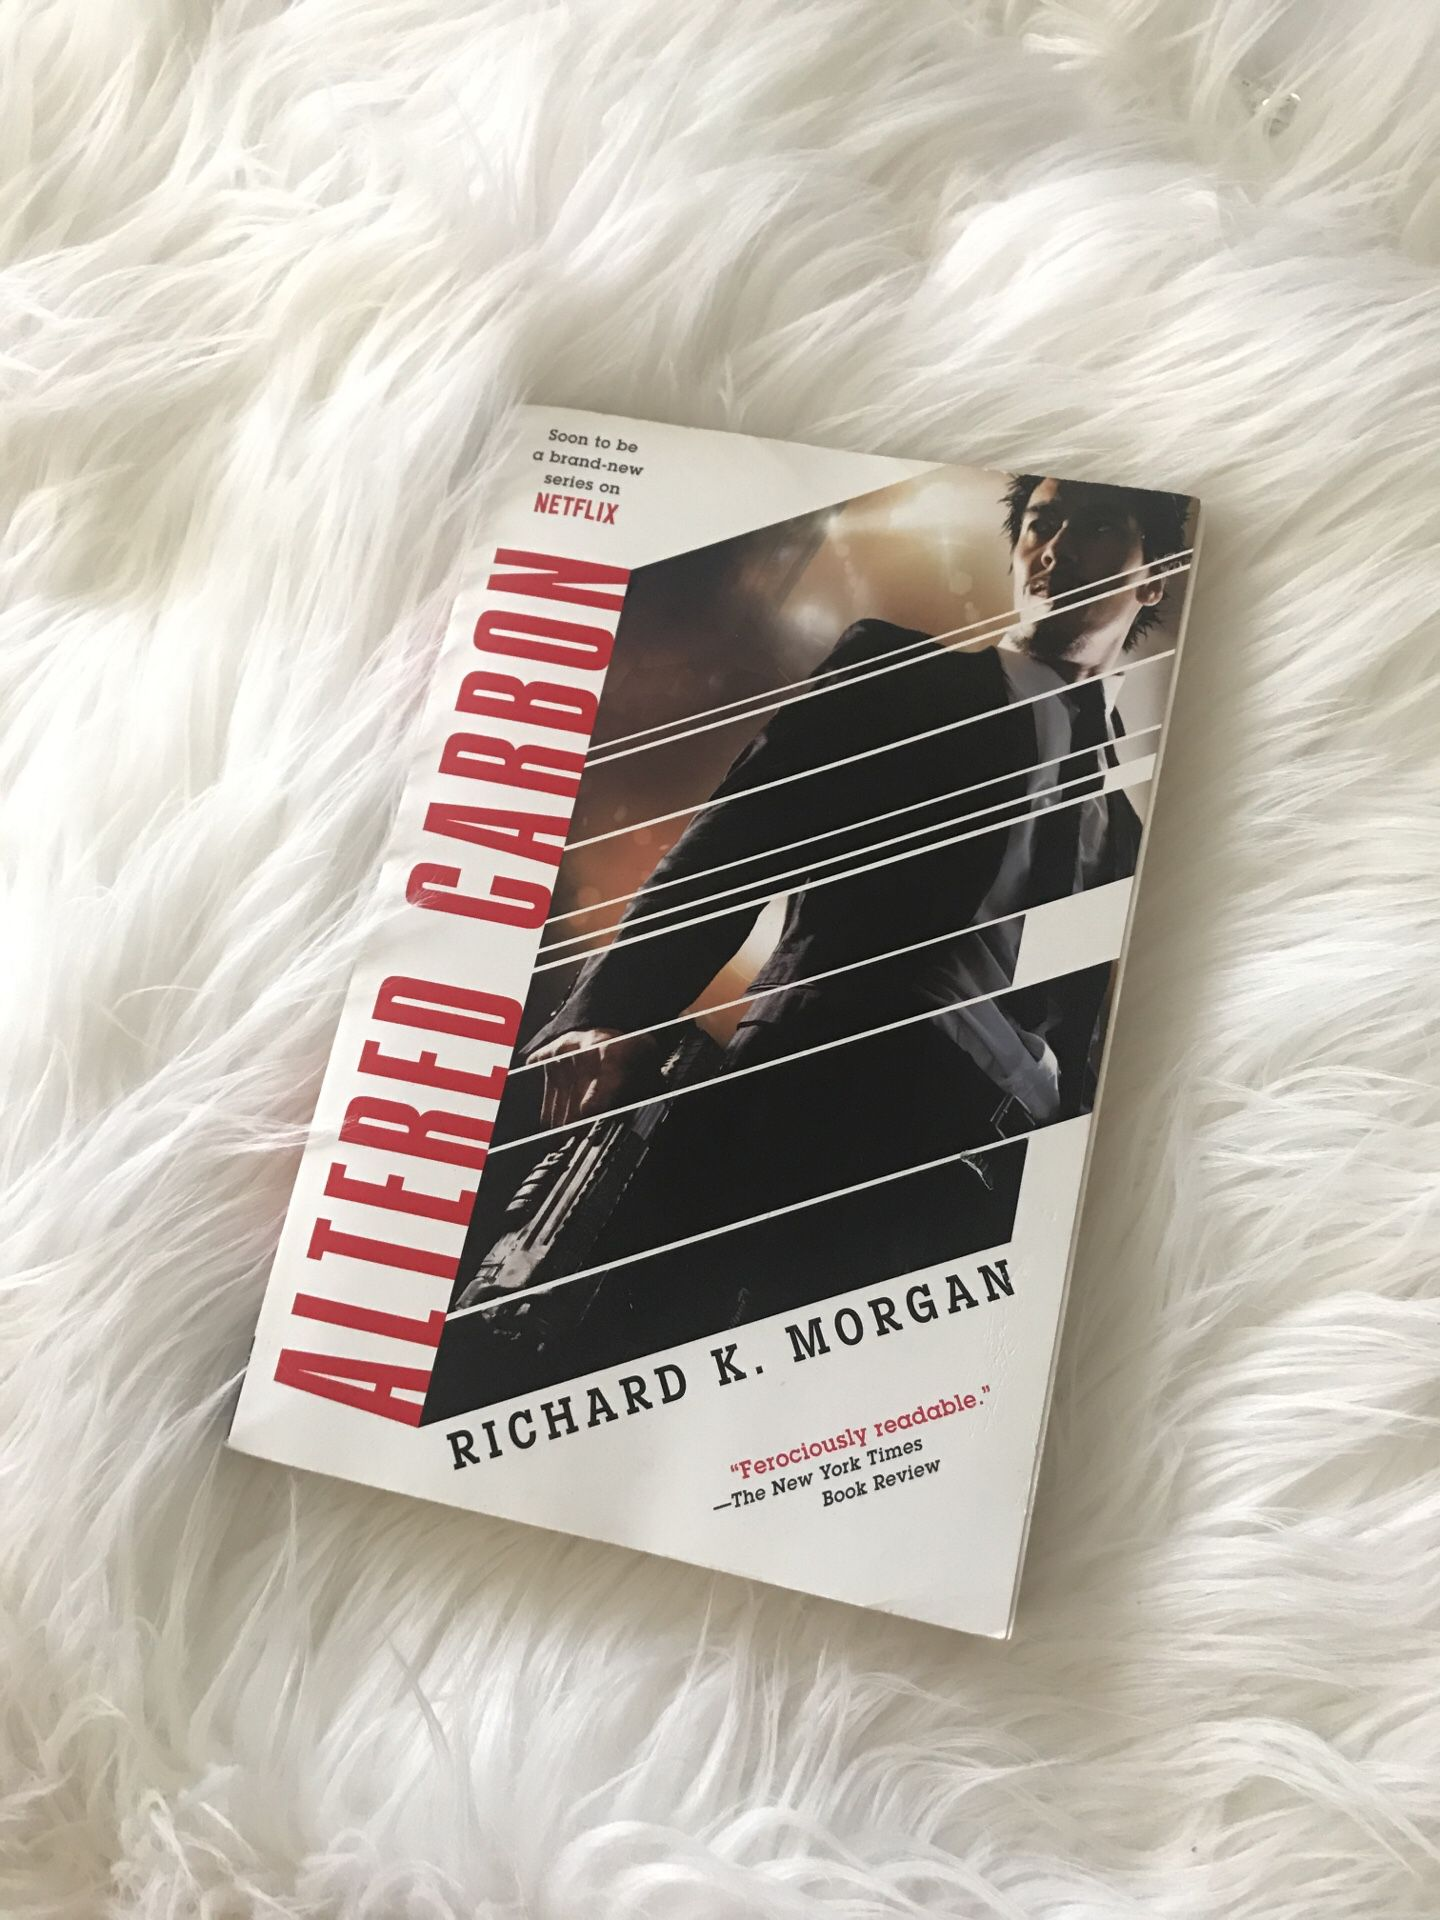 BOOK: Altered Carbon by Richard K Morgan